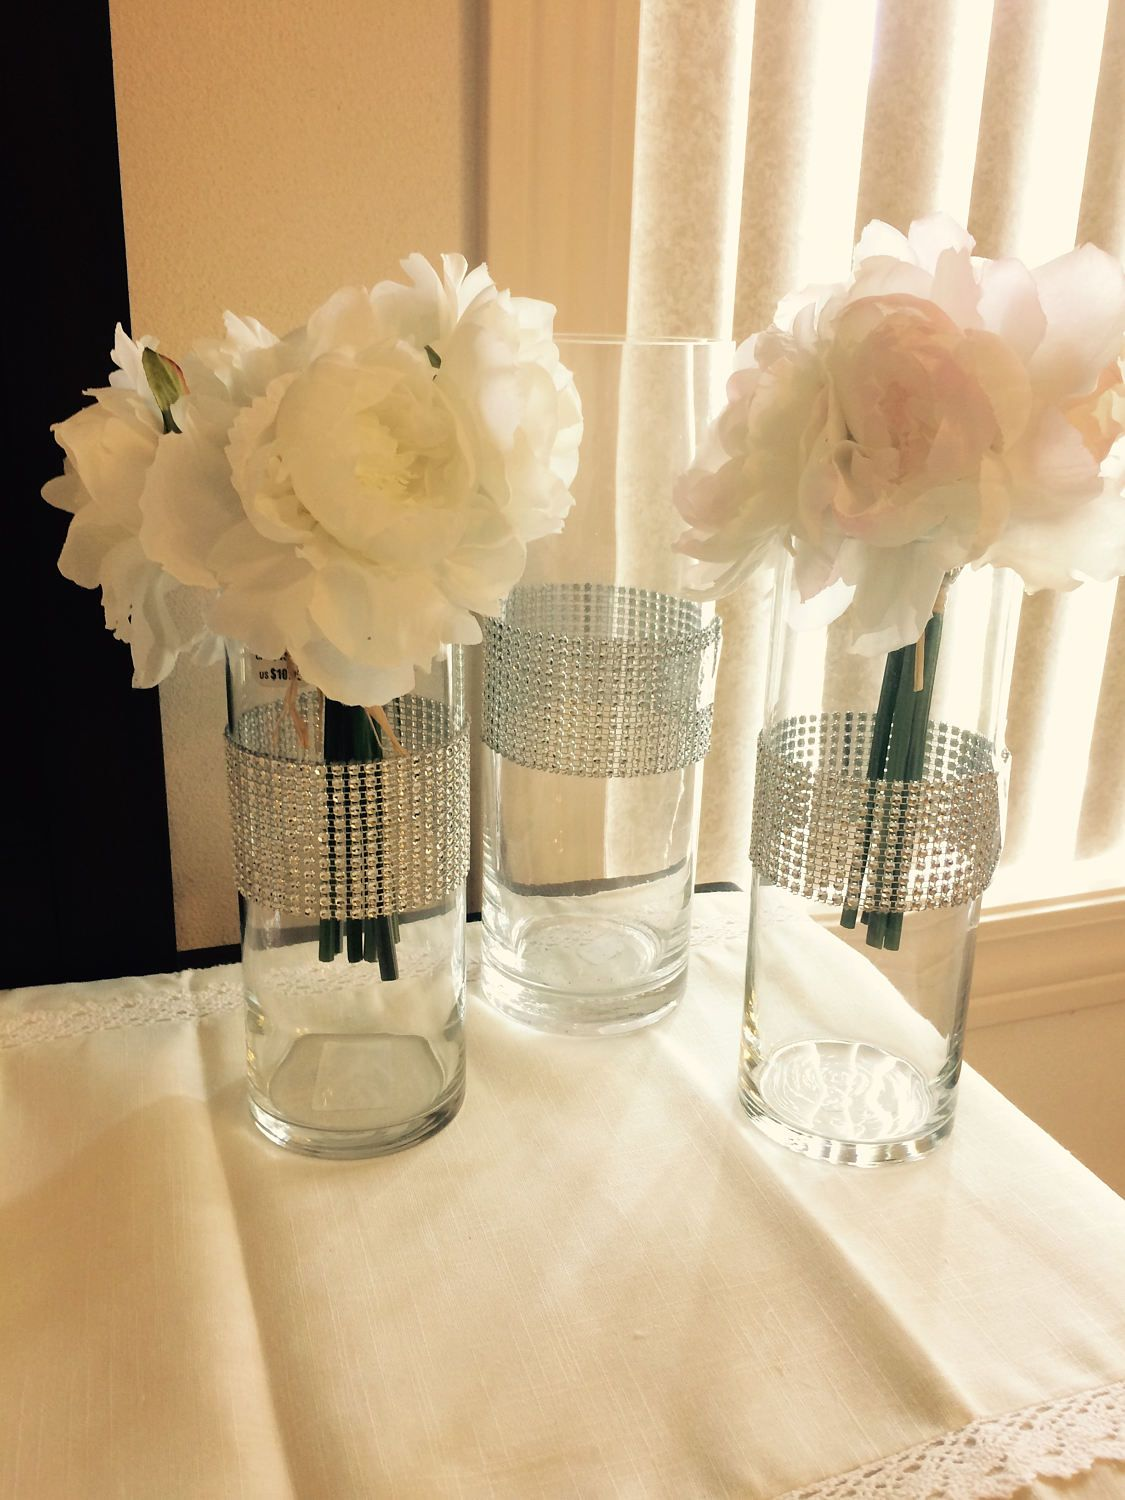 Tall wedding centerpieces cylinder shaped vases with silver tall wedding centerpieces cylinder shaped vases with silver shimmering rhinestone look mesh ribbon wrapped around the center of each vase floridaeventfo Image collections